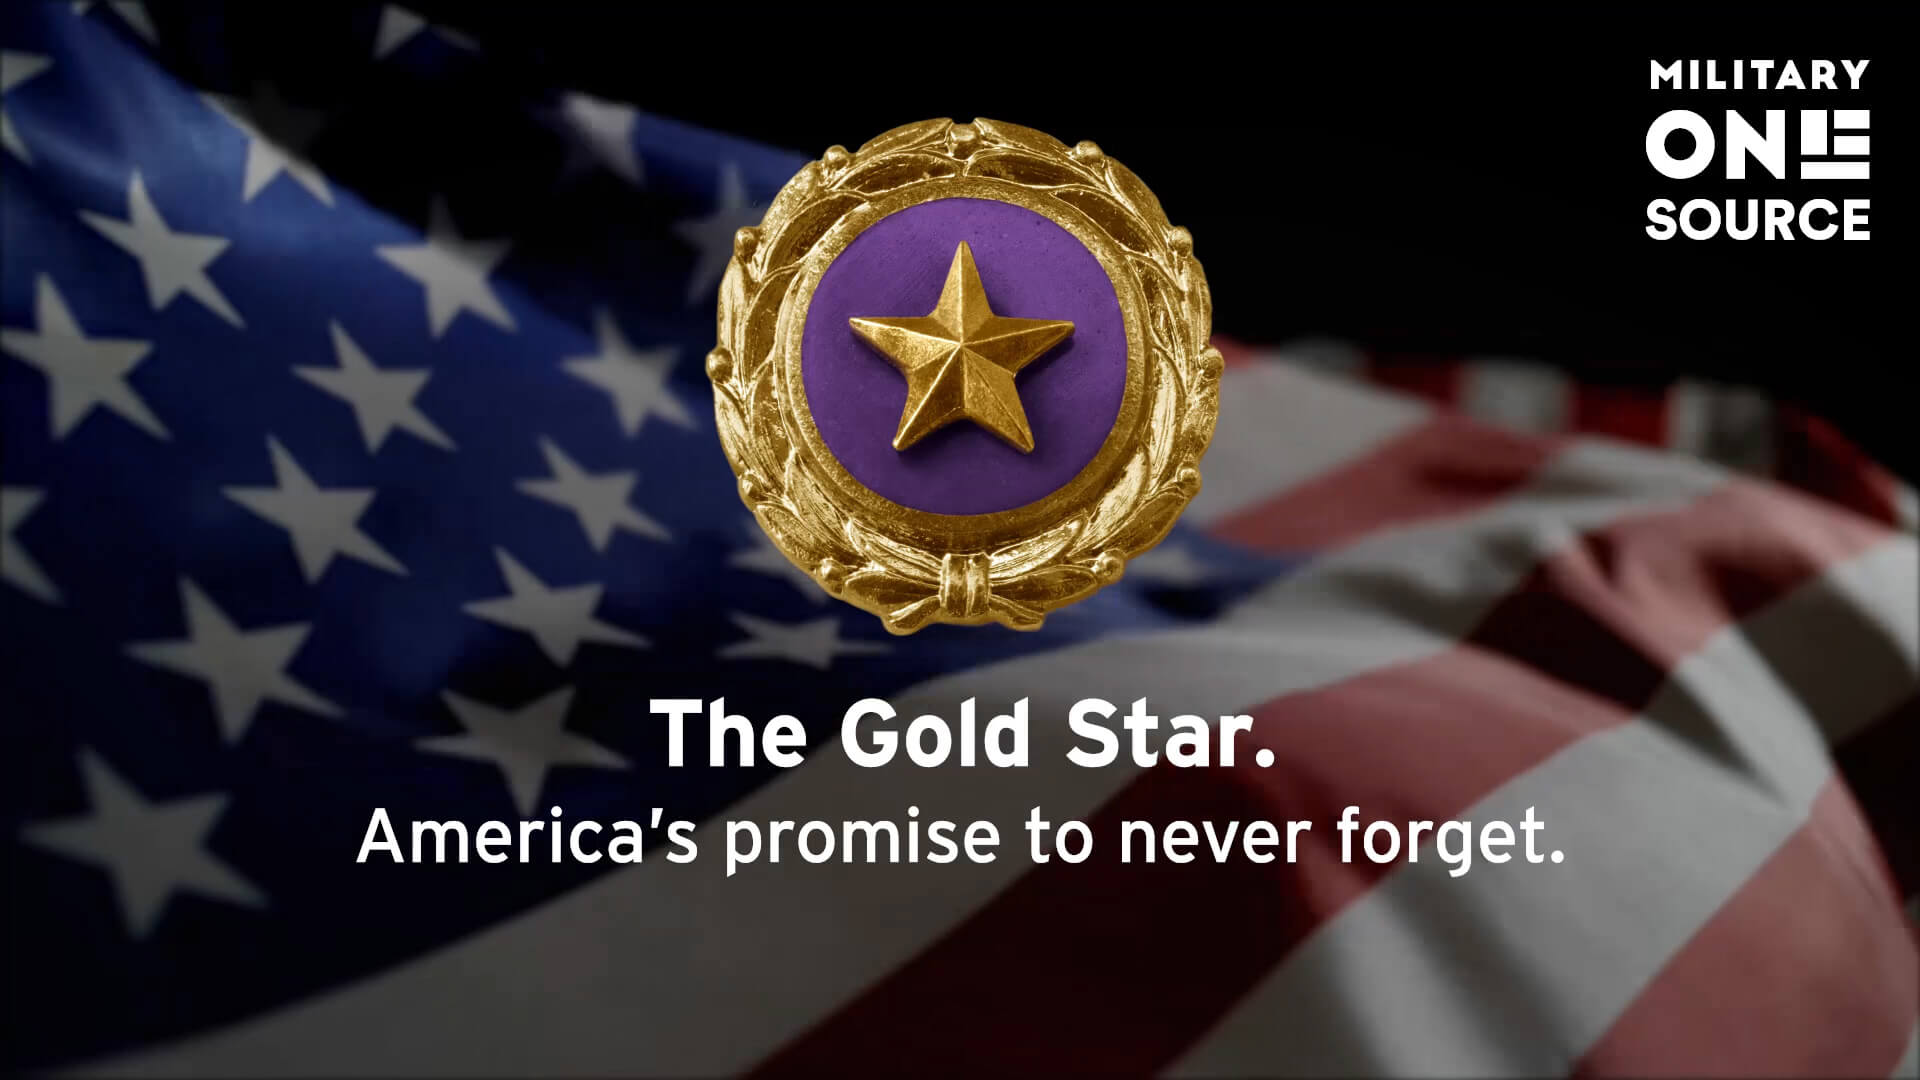 Honoring Military Gold Star Families | Military OneSource